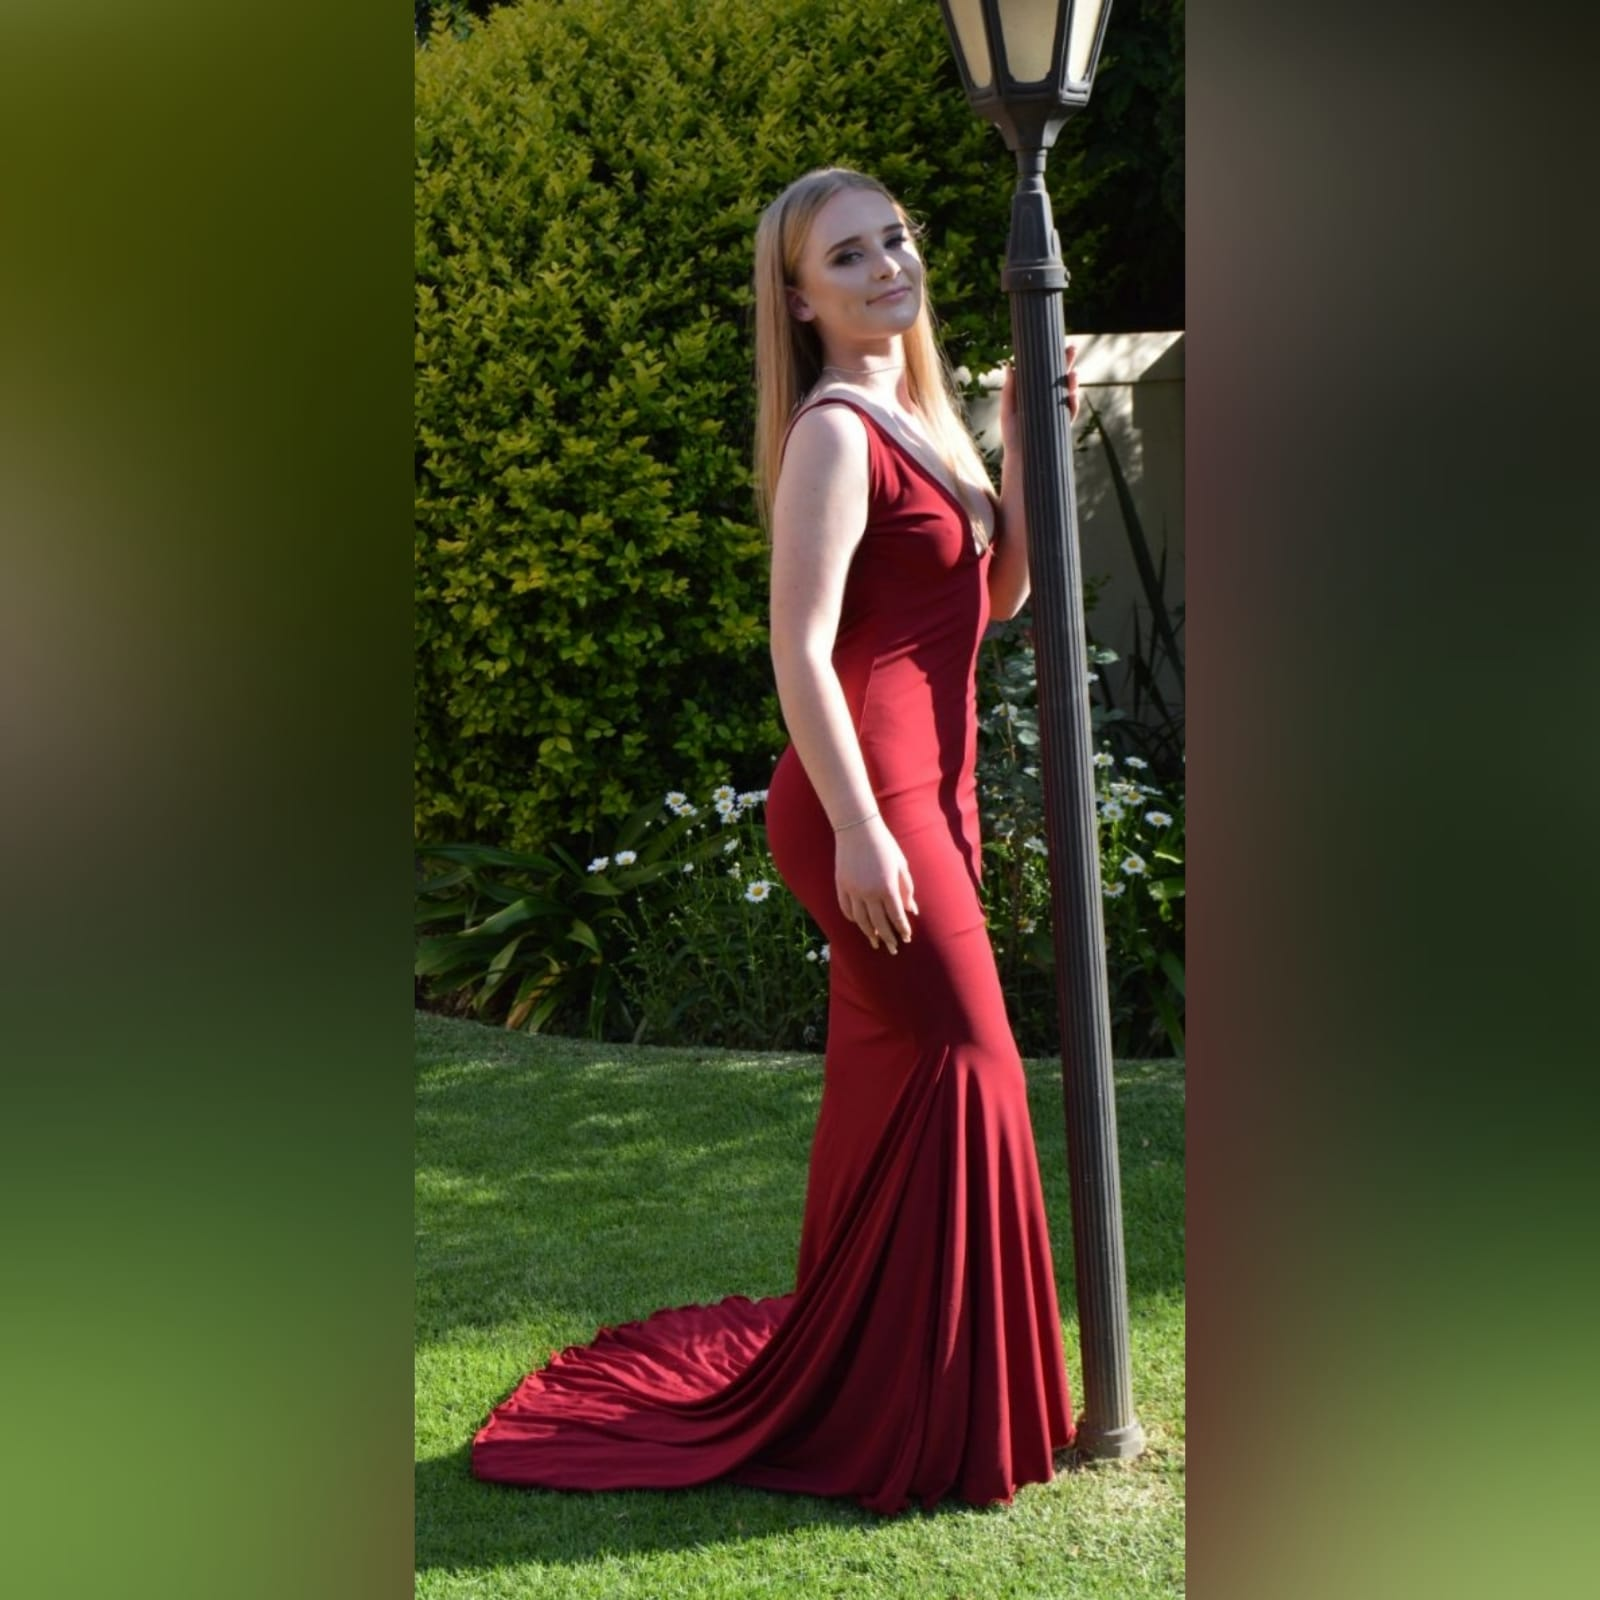 Deep red plunging neckline prom dress 1 deep red plunging neckline prom dress, low open back with thin should straps and a long train.